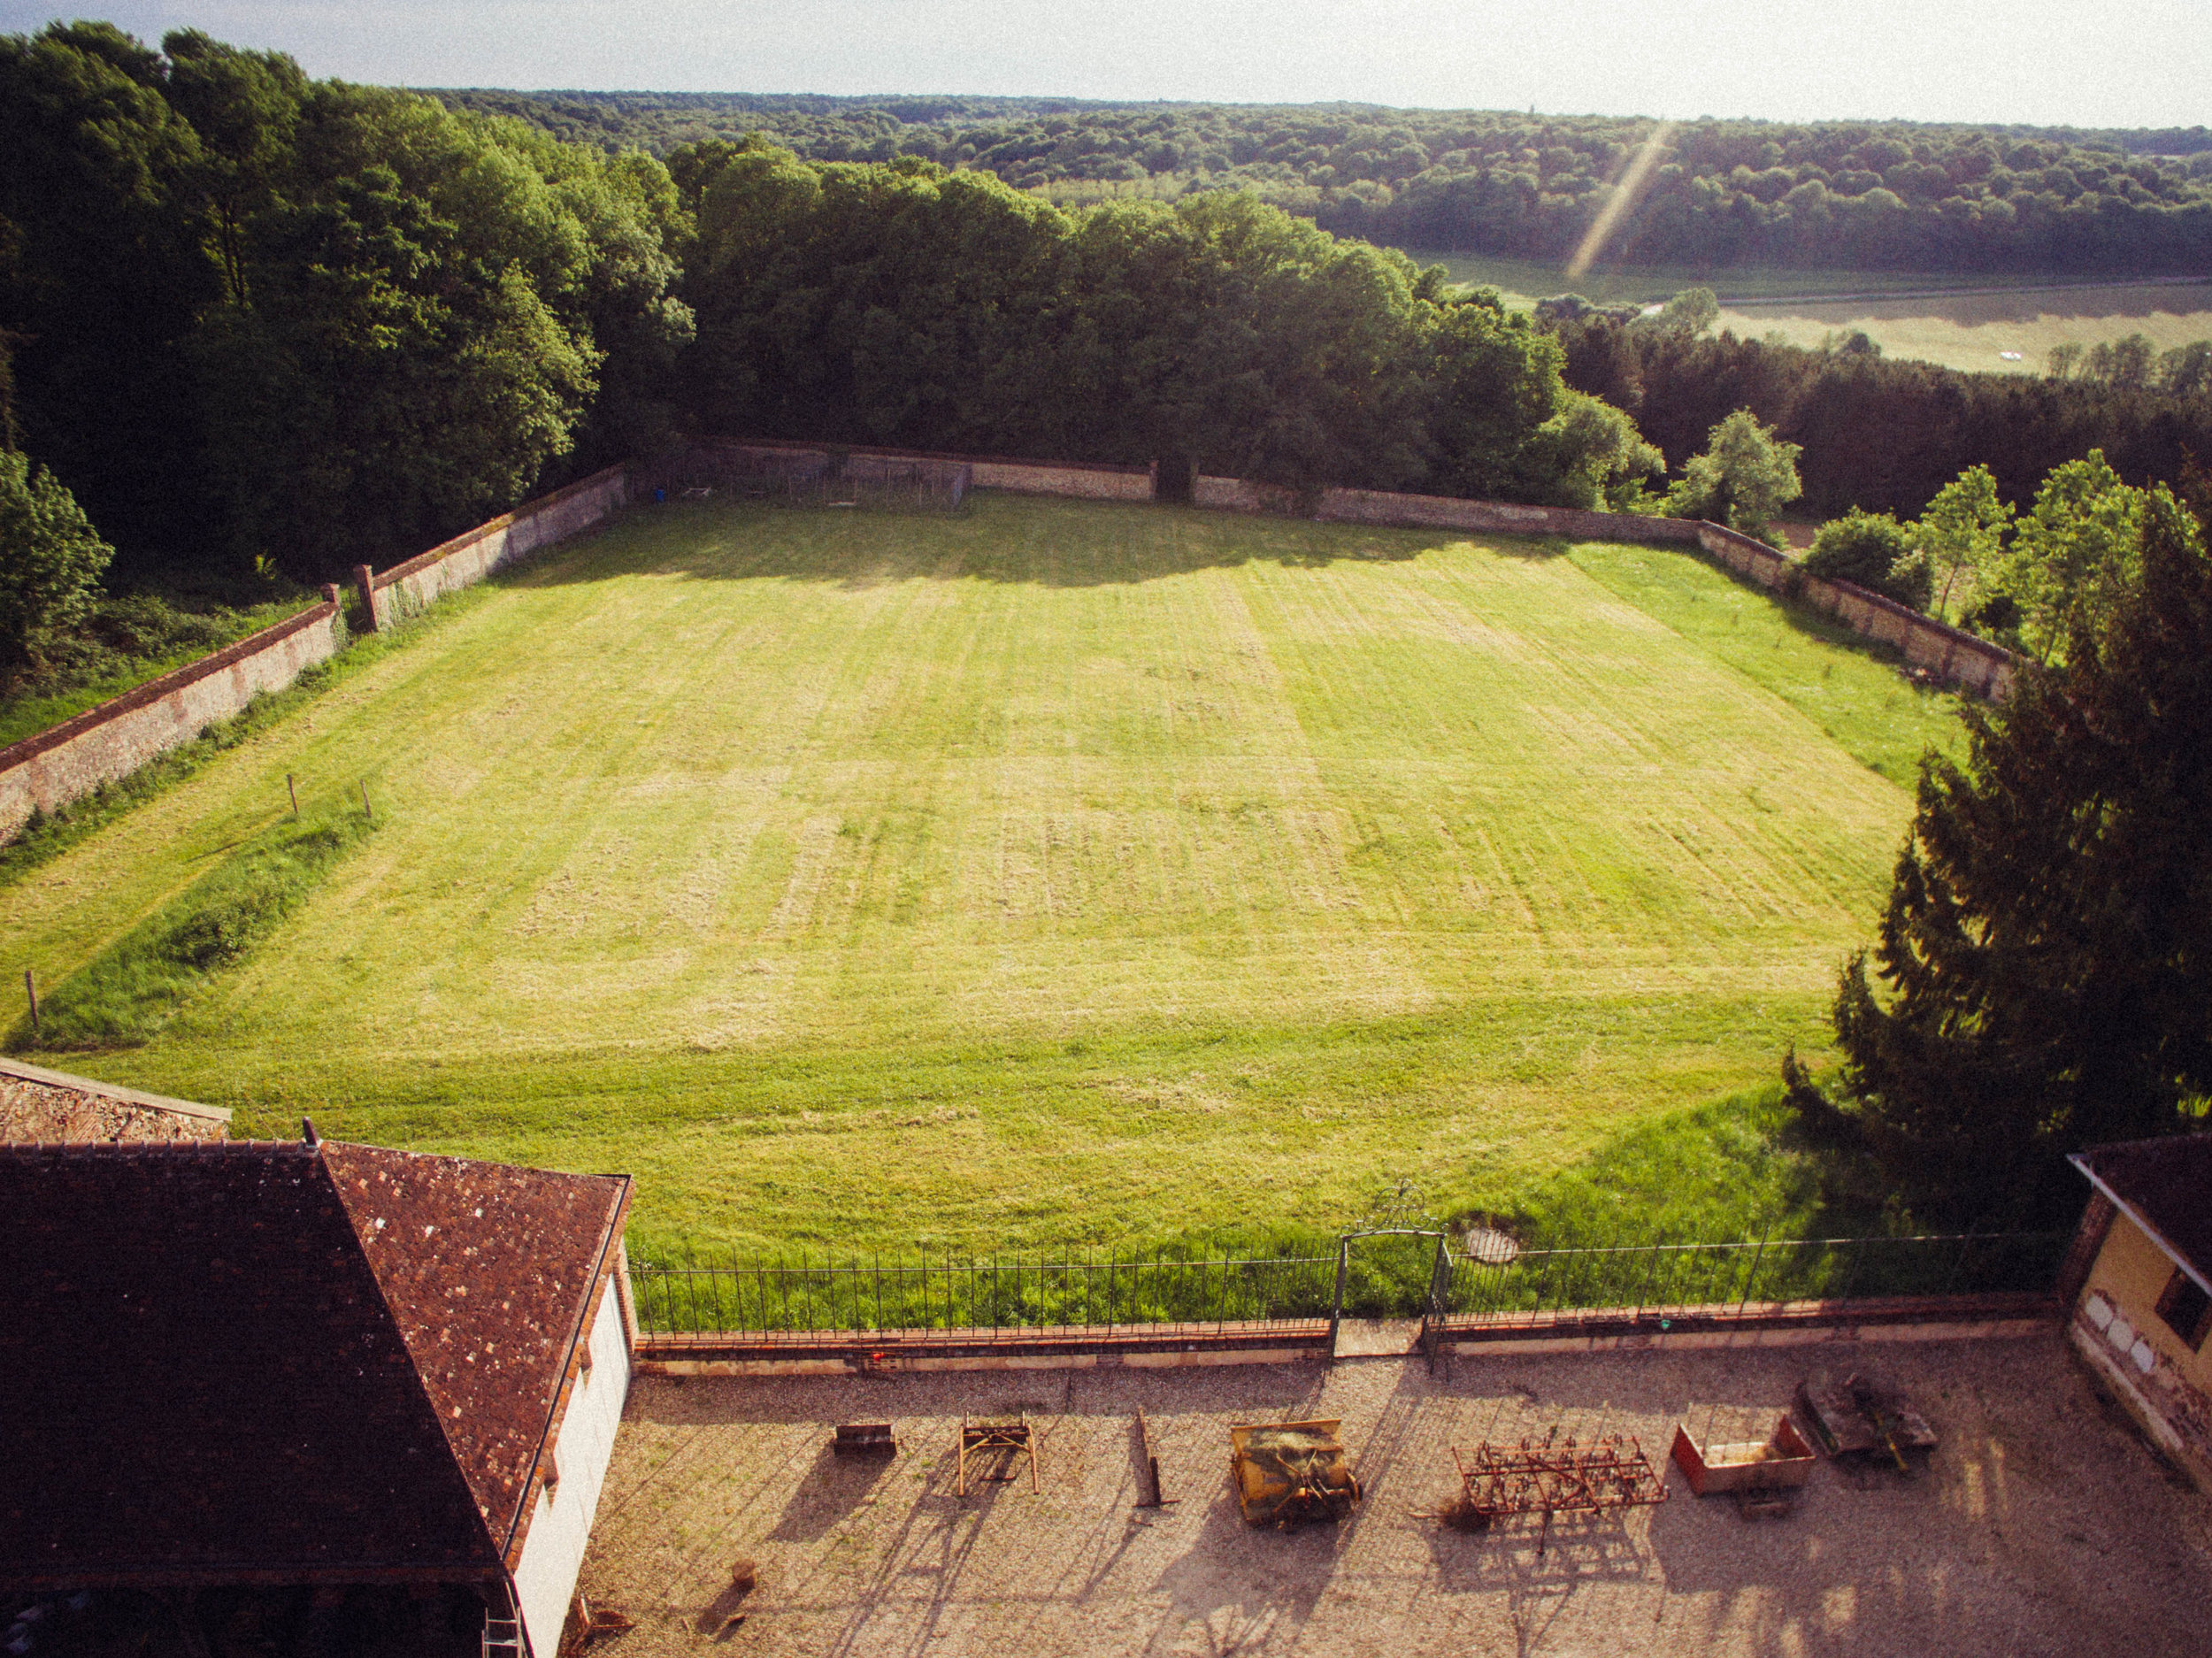 Aerial view of the garden before prep work began